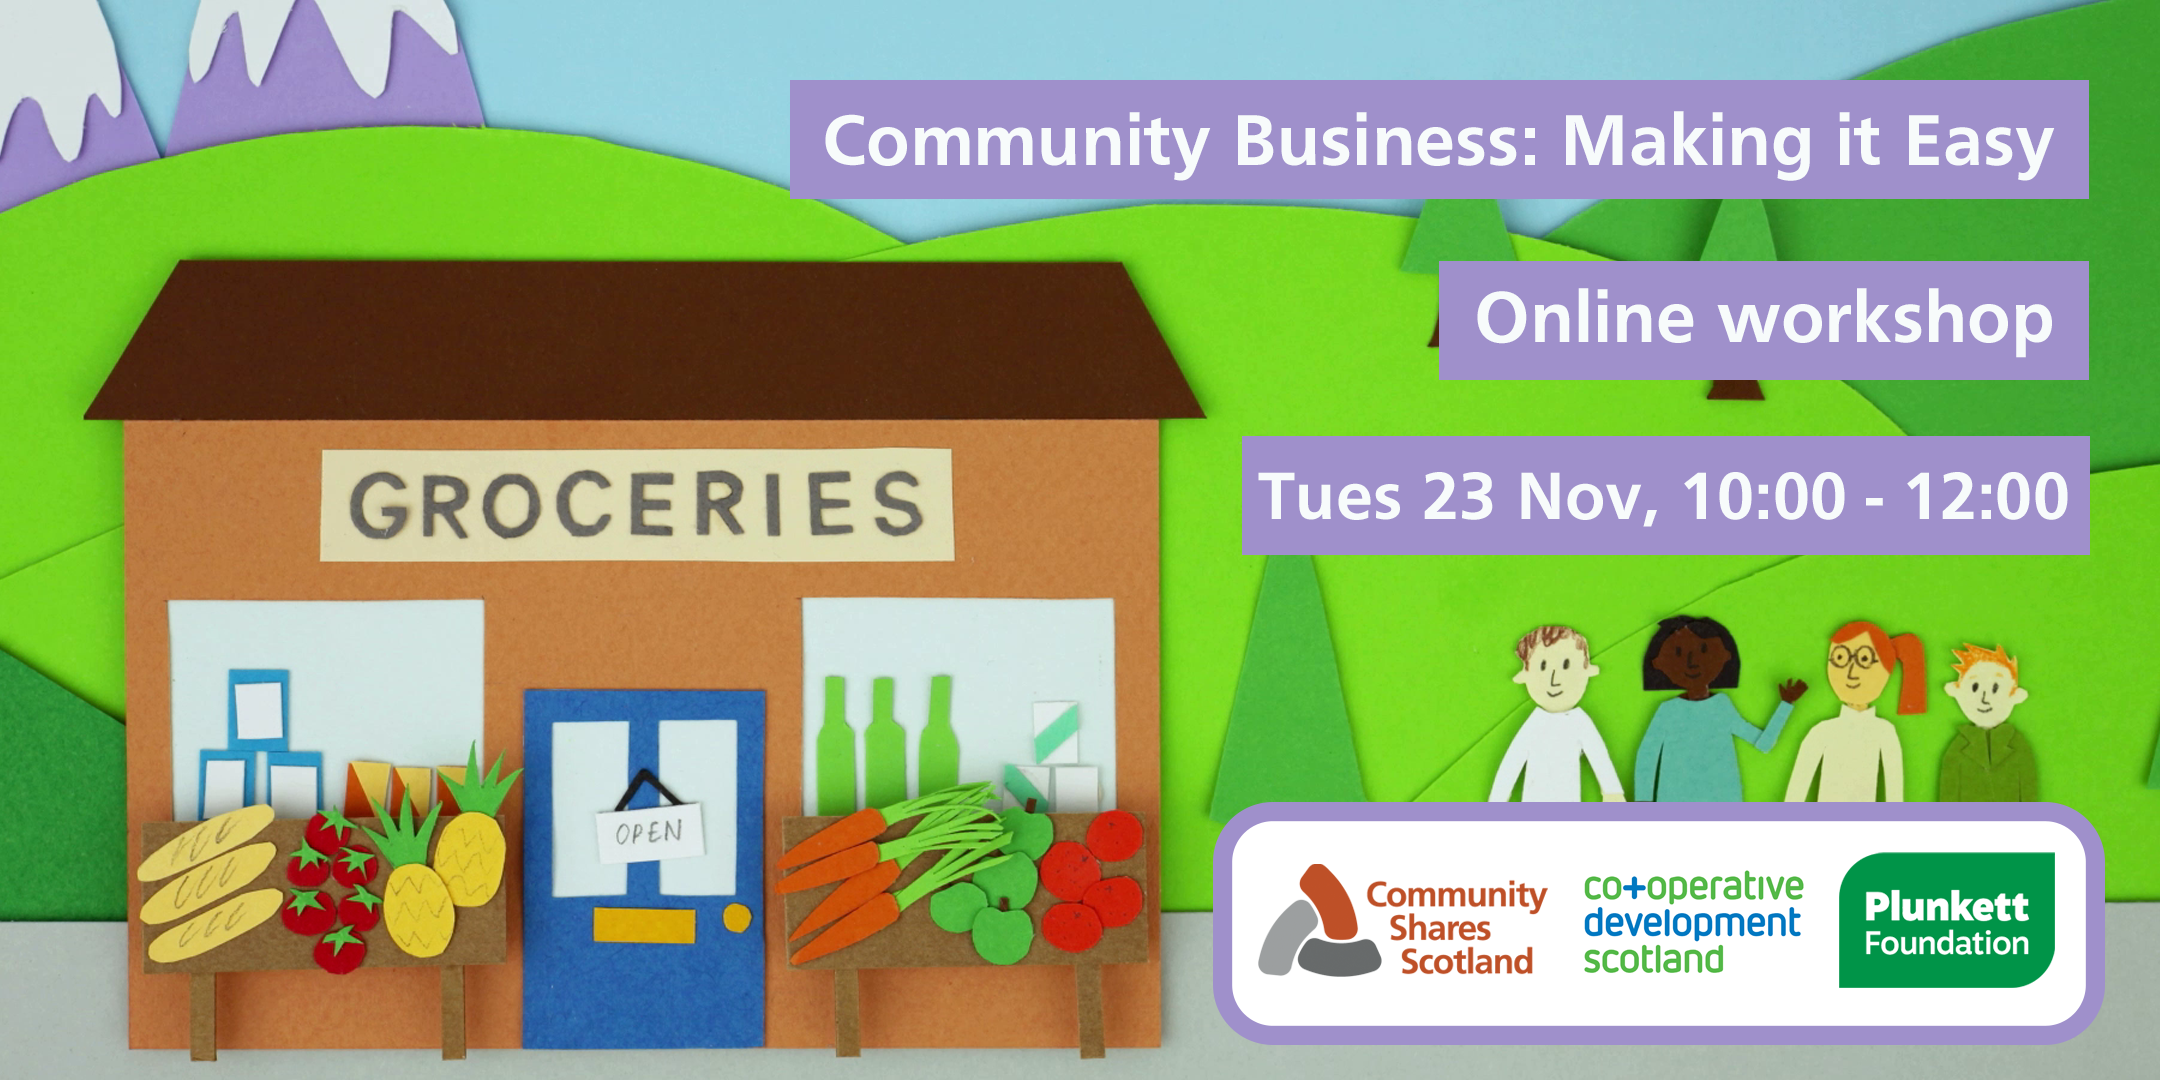 'Community Business: Making it Easy' event promo